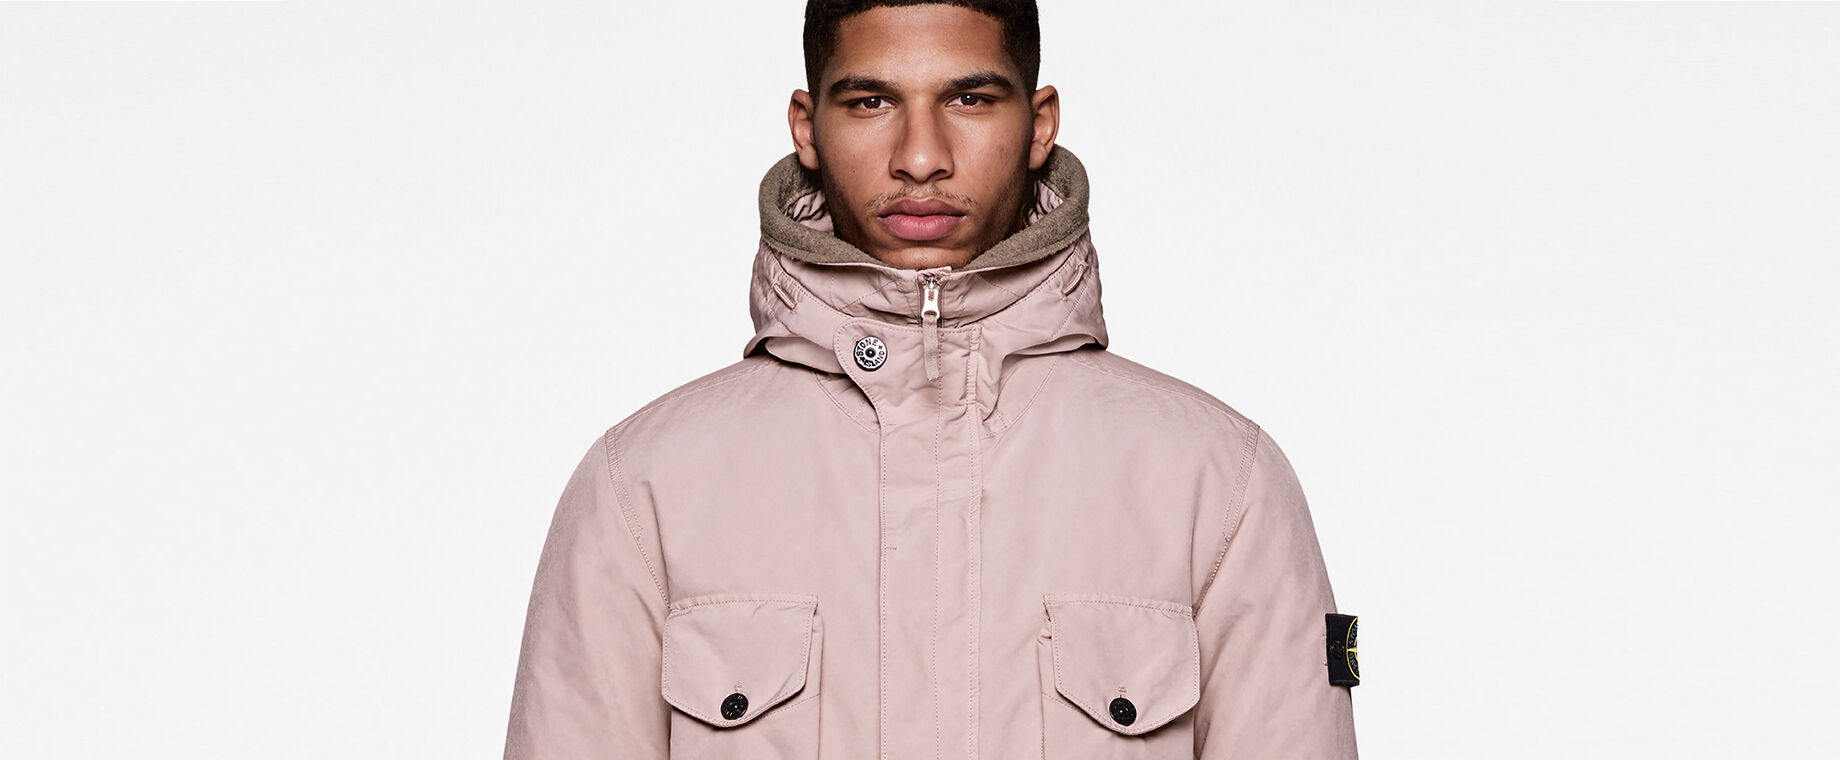 Model wearing a light pink hooded jacket with concealed full-zip fastening, four buttoned flap pockets and the Stone Island badge on the upper left sleeve.